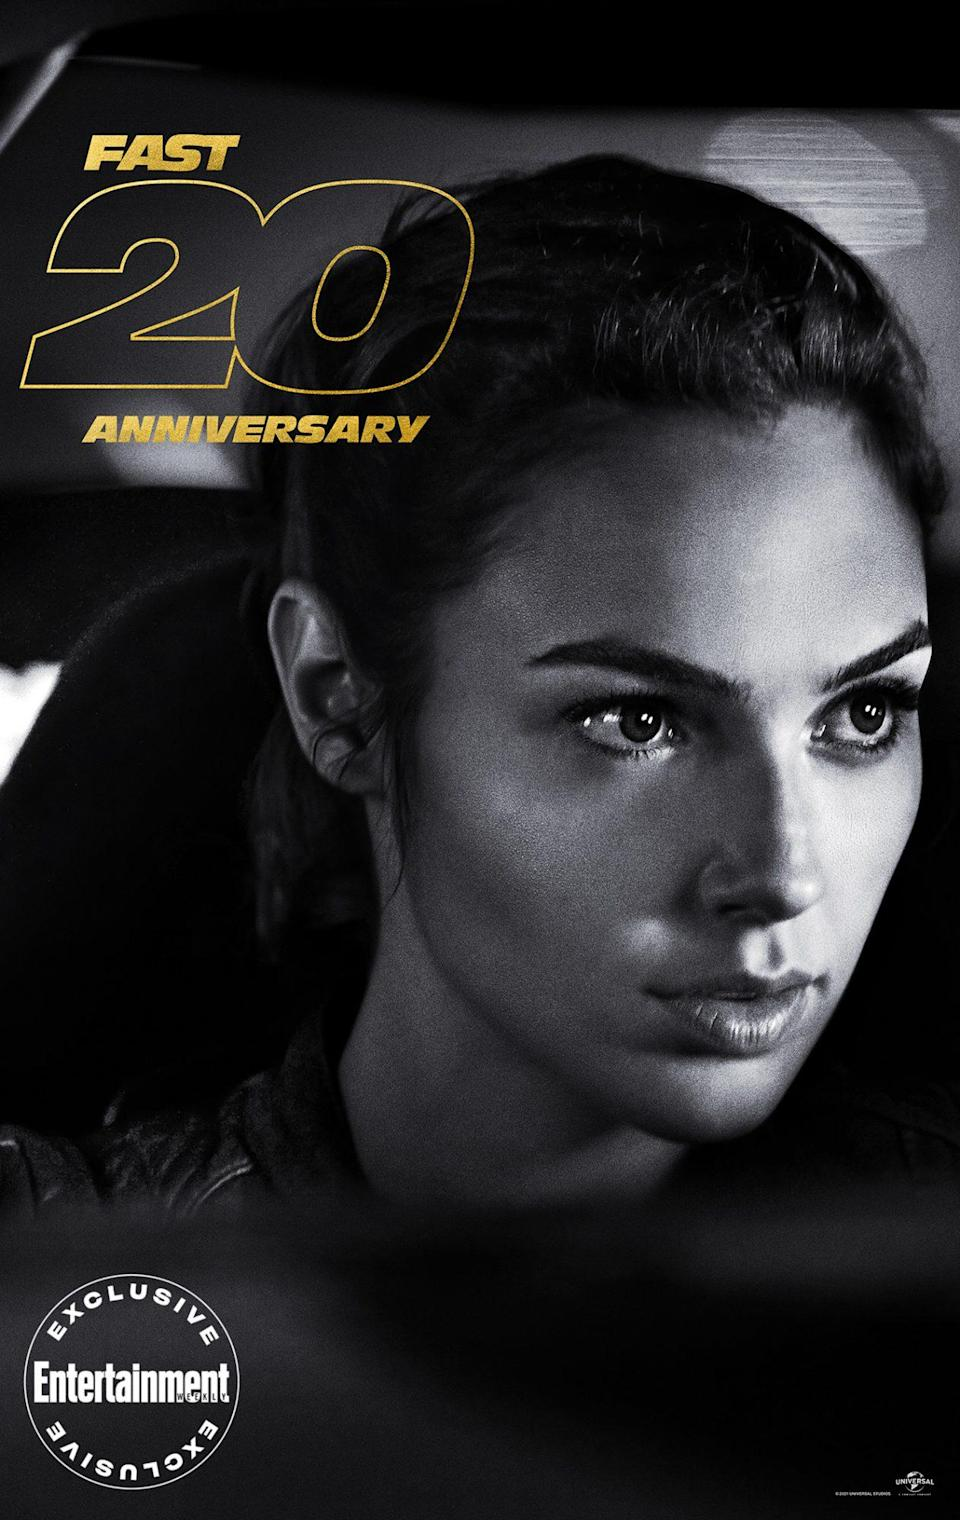 """<p>Before she was Wonder Woman, <a href=""""https://ew.com/tag/gal-gadot/"""" rel=""""nofollow noopener"""" target=""""_blank"""" data-ylk=""""slk:Gal Gadot"""" class=""""link rapid-noclick-resp"""">Gal Gadot</a> was Gisele. First introduced in 2009's <em>Fast & Furious</em>, Gisele appeared in the next three films, finding a home with Han and the team, until she sacrificed herself for him in <em>Fast 6</em>. """"There was just something about her,"""" <a href=""""https://ew.com/ew-binge-podcast/fast-saga-justin-lin-fast-furious/"""" rel=""""nofollow noopener"""" target=""""_blank"""" data-ylk=""""slk:Lin says of Gadot's audition"""" class=""""link rapid-noclick-resp"""">Lin says of Gadot's audition</a>. """"Gal just nailed it. And I just remember sitting there going, 'God, I'm so happy the process resulted in us meeting her.' She was just fearless.""""</p>"""